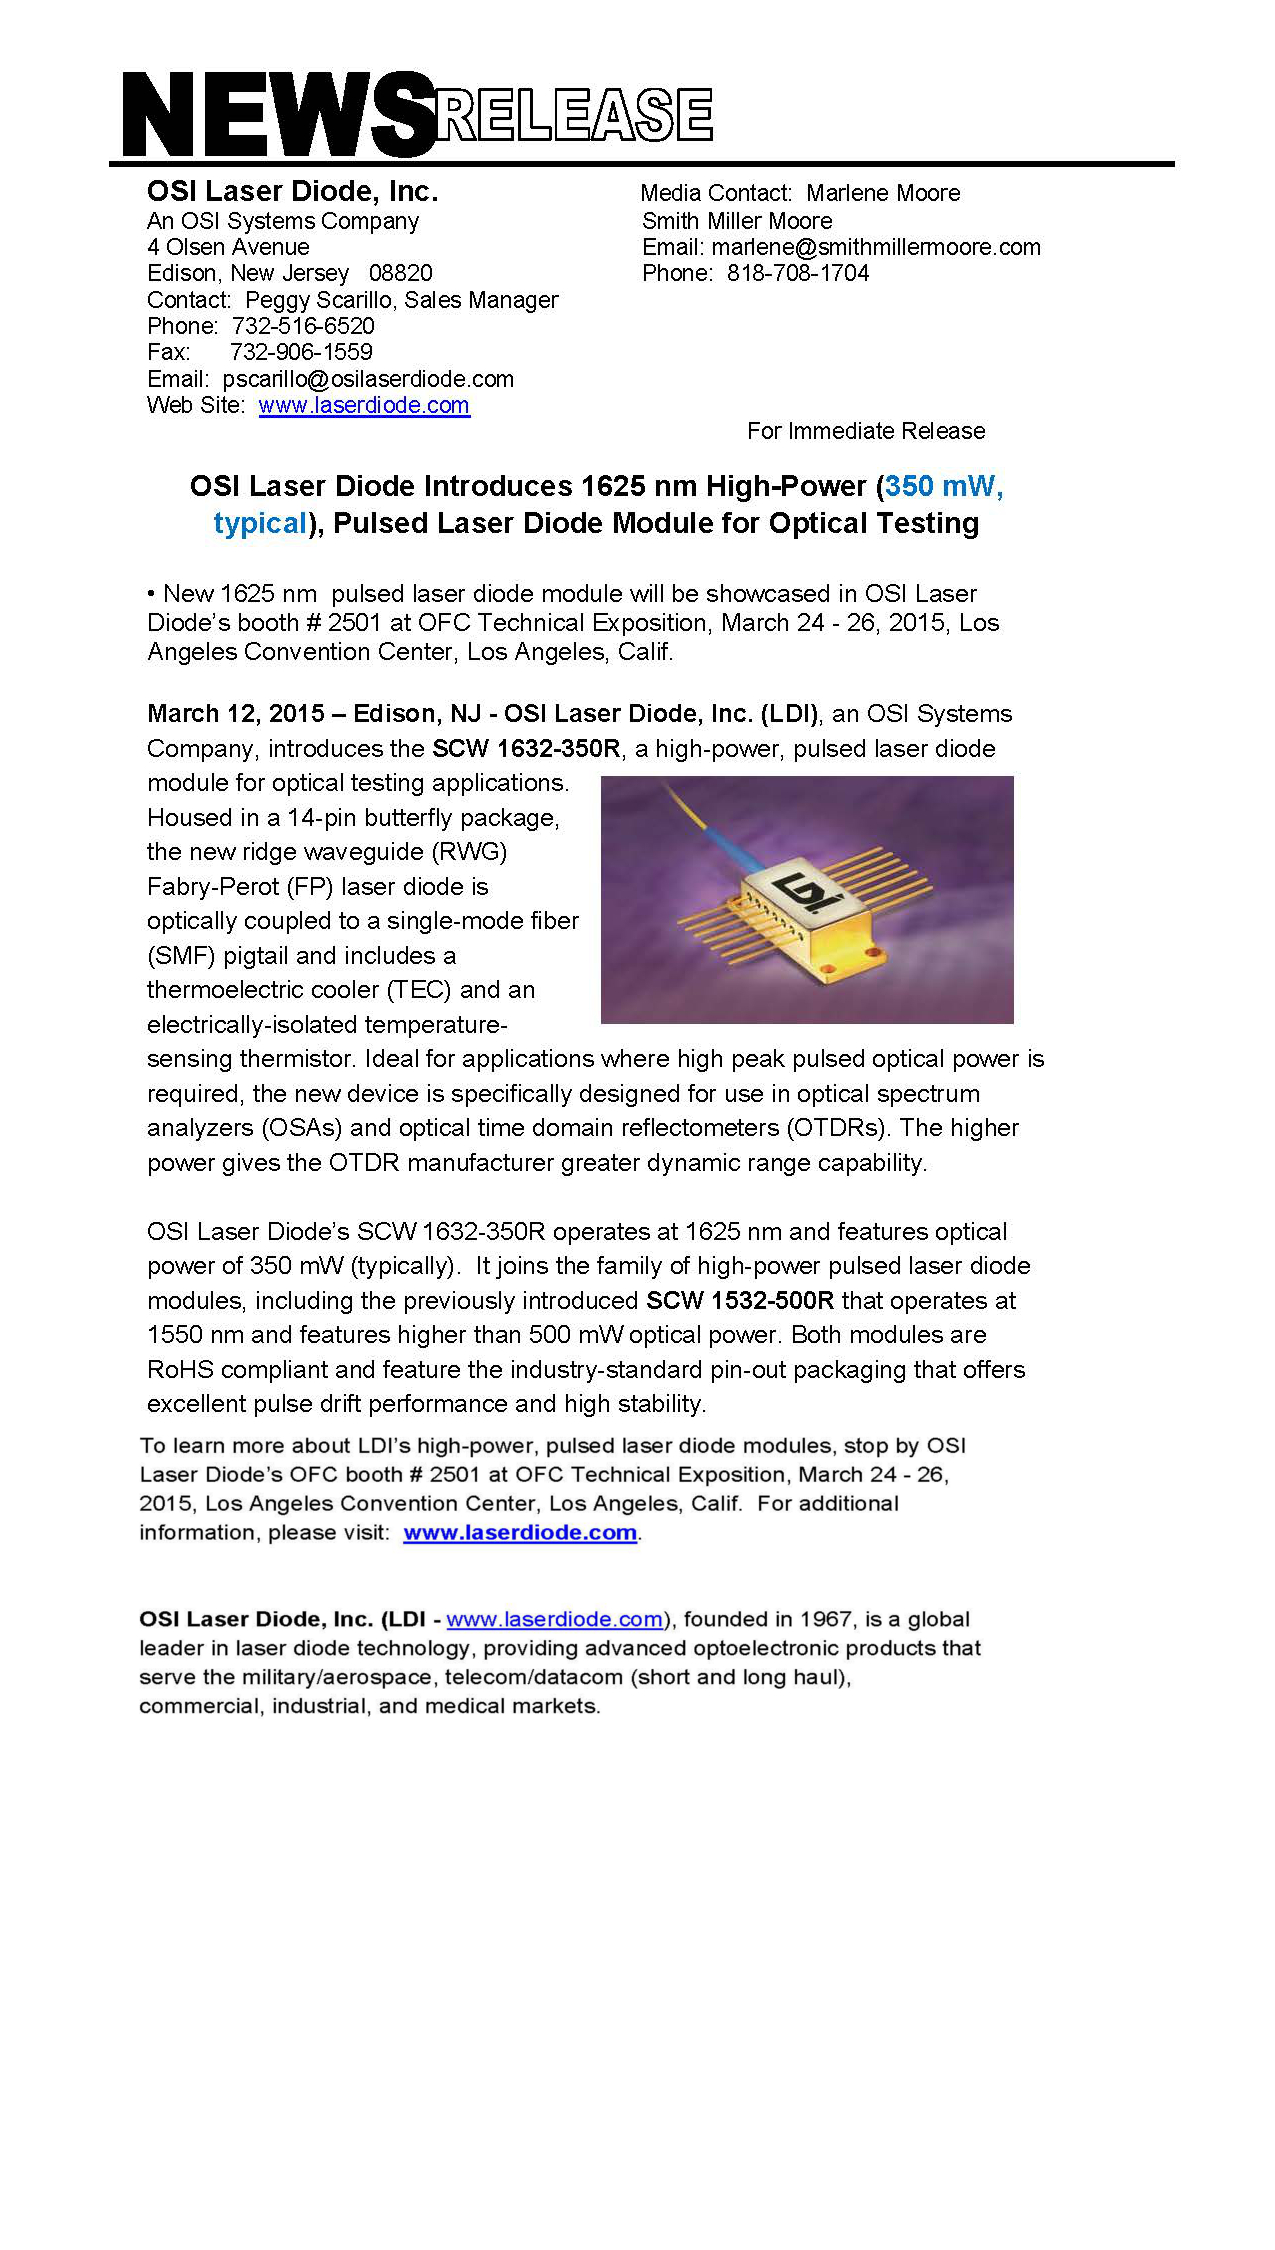 OSI Laser Diode Introduces 1625 nm High-Power (350 mW, typical), Pulsed Laser Diode Module